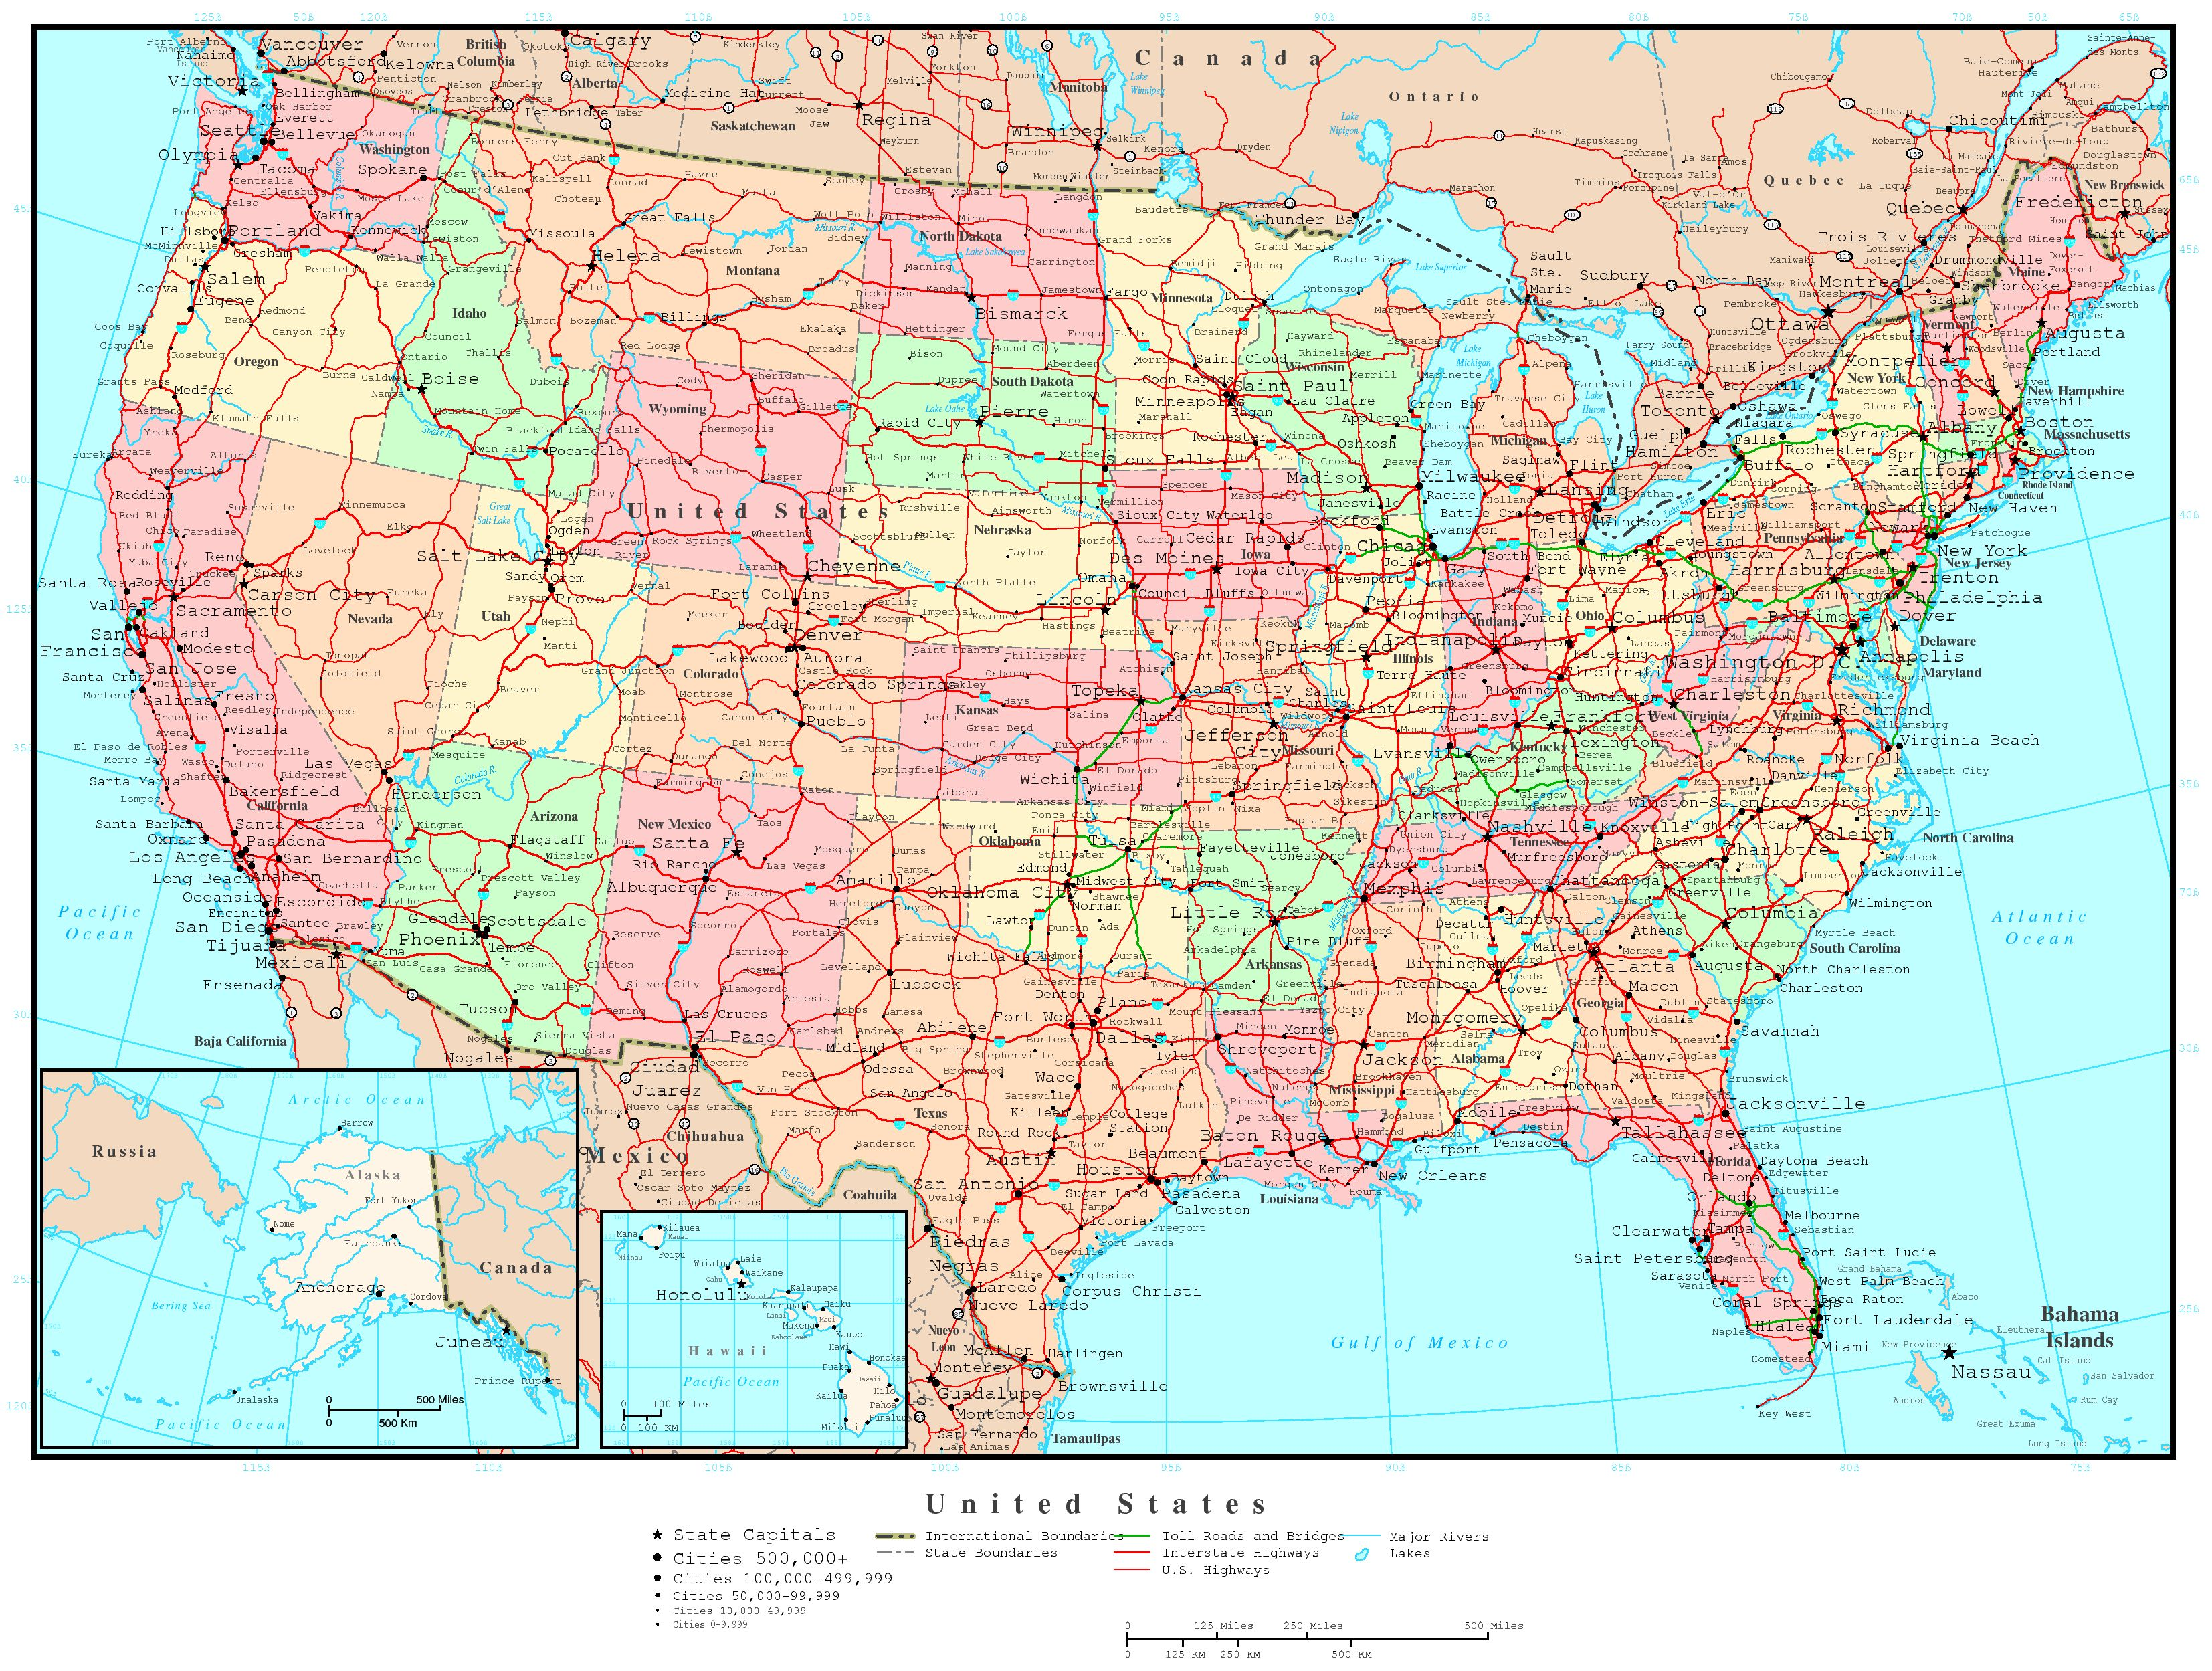 Map Usa Highway Map Usa Highway Reference map showing major highways and cities and roads of United States states